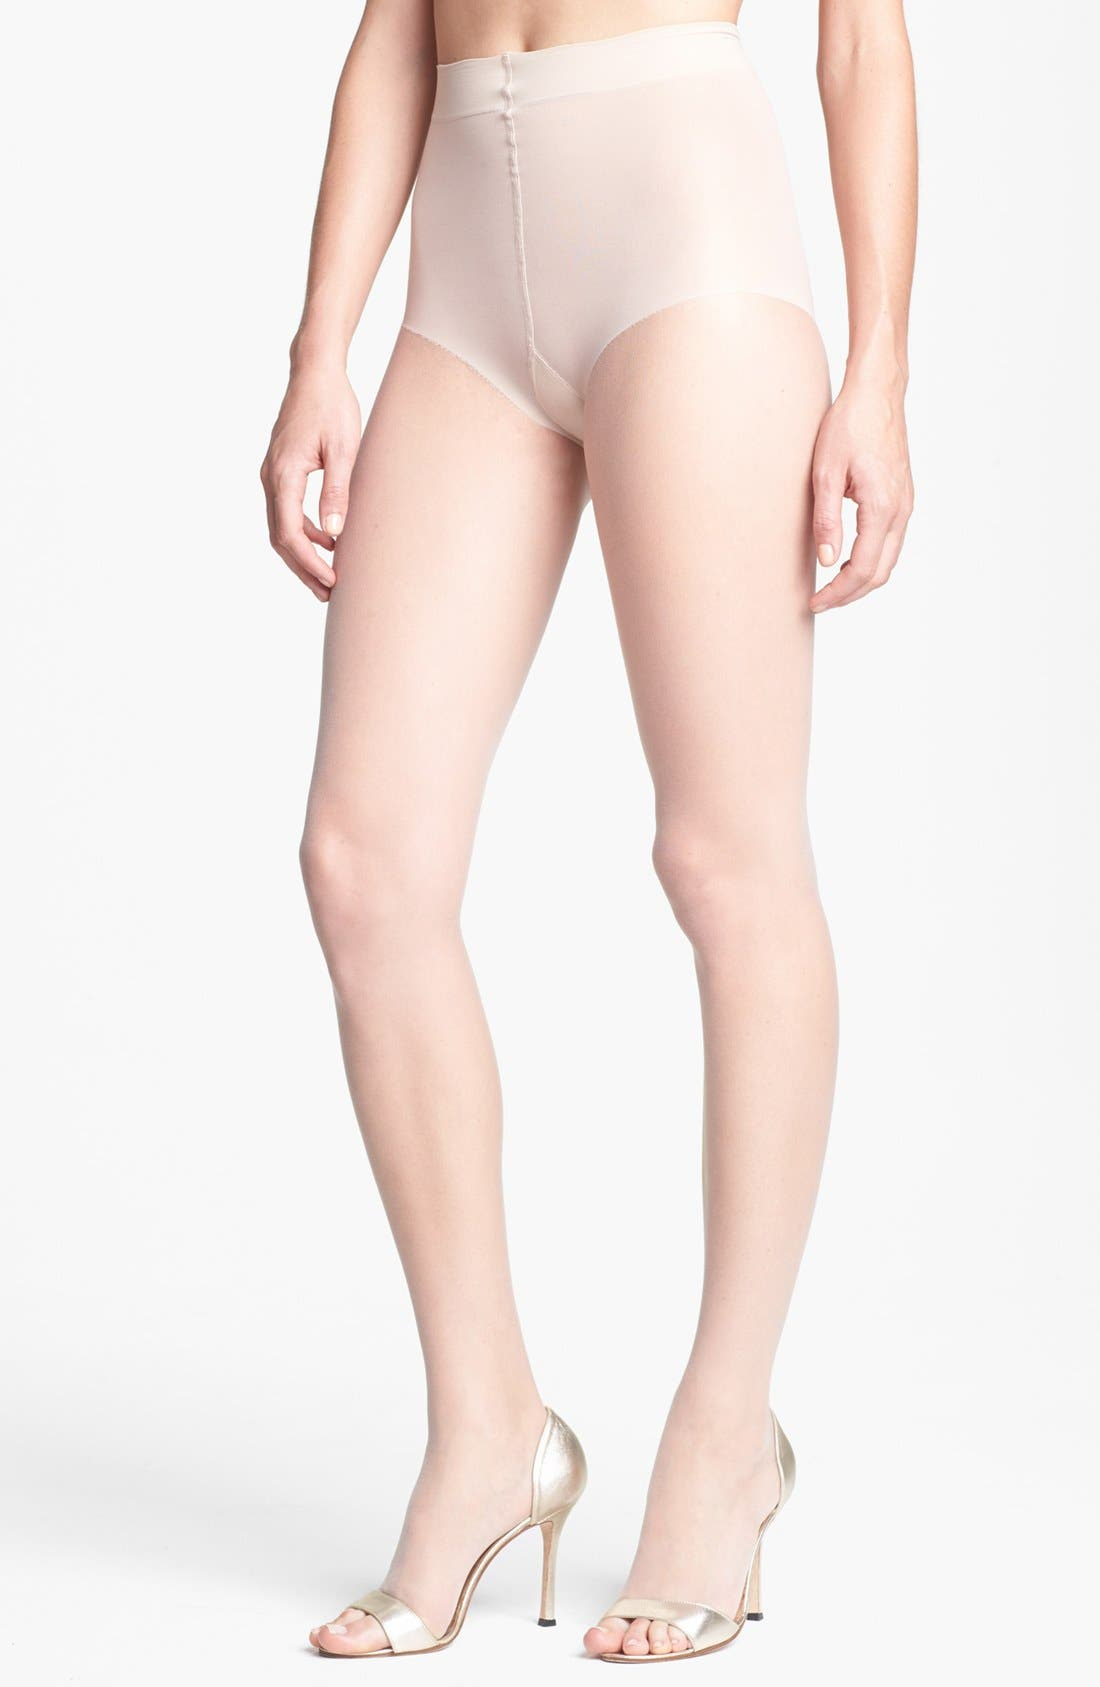 Donna Karan The Nudes Toeless Pantyhose,                         Main,                         color, A01